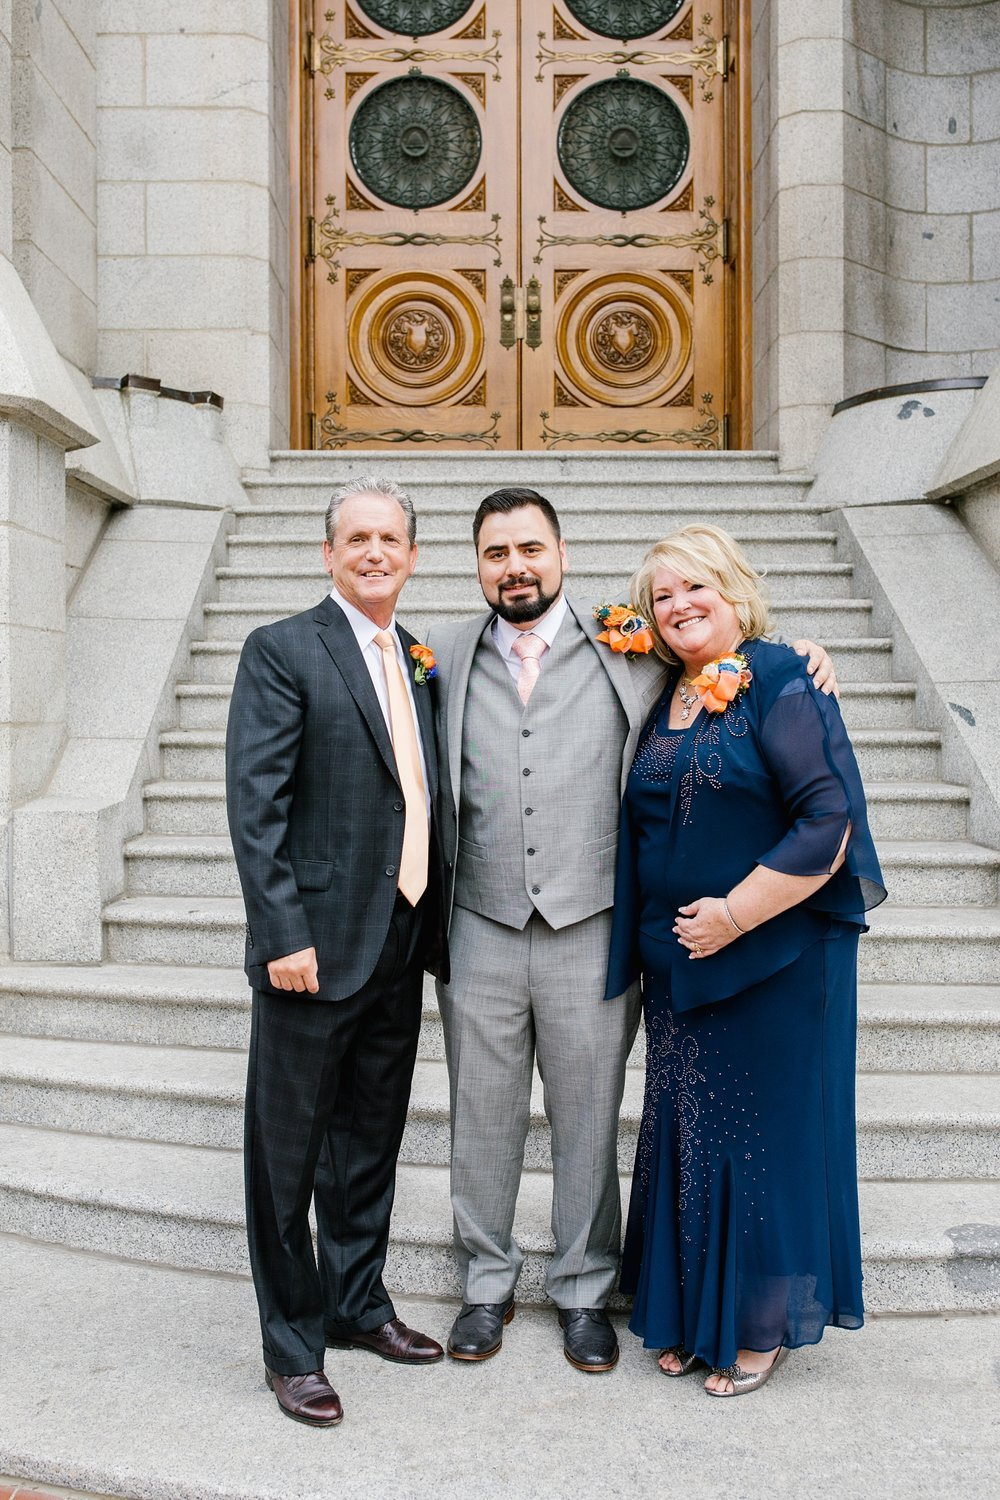 Justin and Melissa-67_Lizzie-B-Imagery-Utah-Wedding-Photographer-Salt-Lake-City-Temple-Photographer-Lion-House-Luncheon-The-Grand-Ballroom-Bountiful.jpg